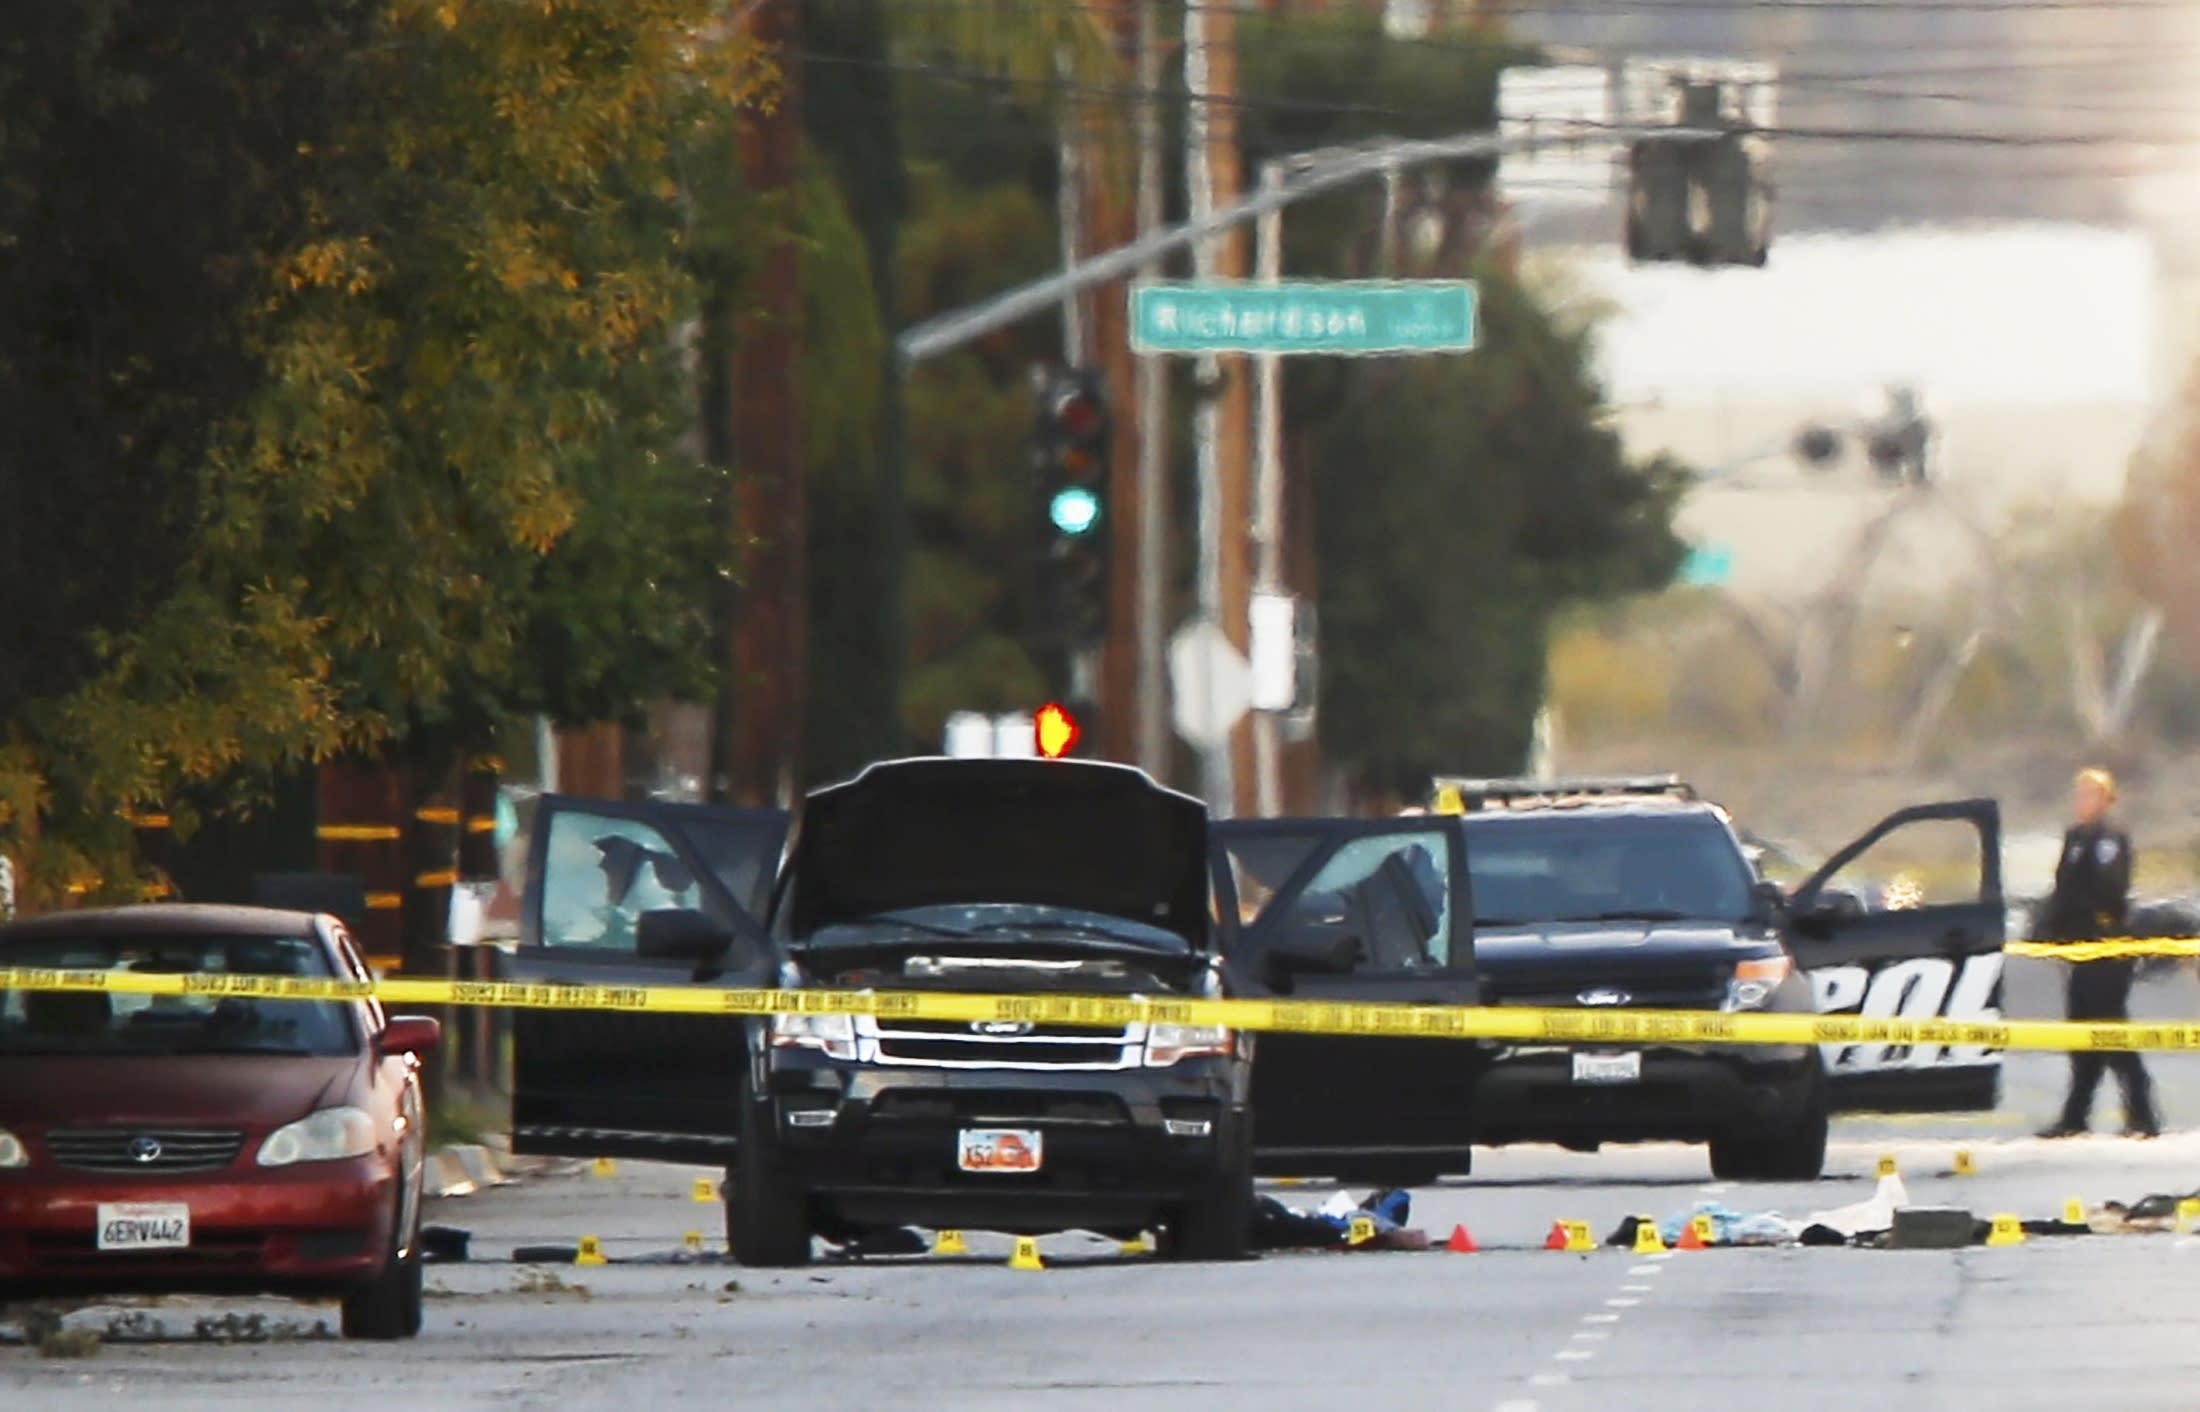 A police investigator is seen around a vehicle (C) in which two suspects were shot following a mass shooting in San Bernardino, California December 3, 2015. Authorities on Thursday were working to determine why Syed Rizwan Farook, 28, and Tashfeen Malik, 27, who had a 6-month-old daughter together, opened fire at a holiday party of his co-workers in Southern California, killing 14 people and wounding 17 in an attack that appeared to have been planned. REUTERS/Mike Blake